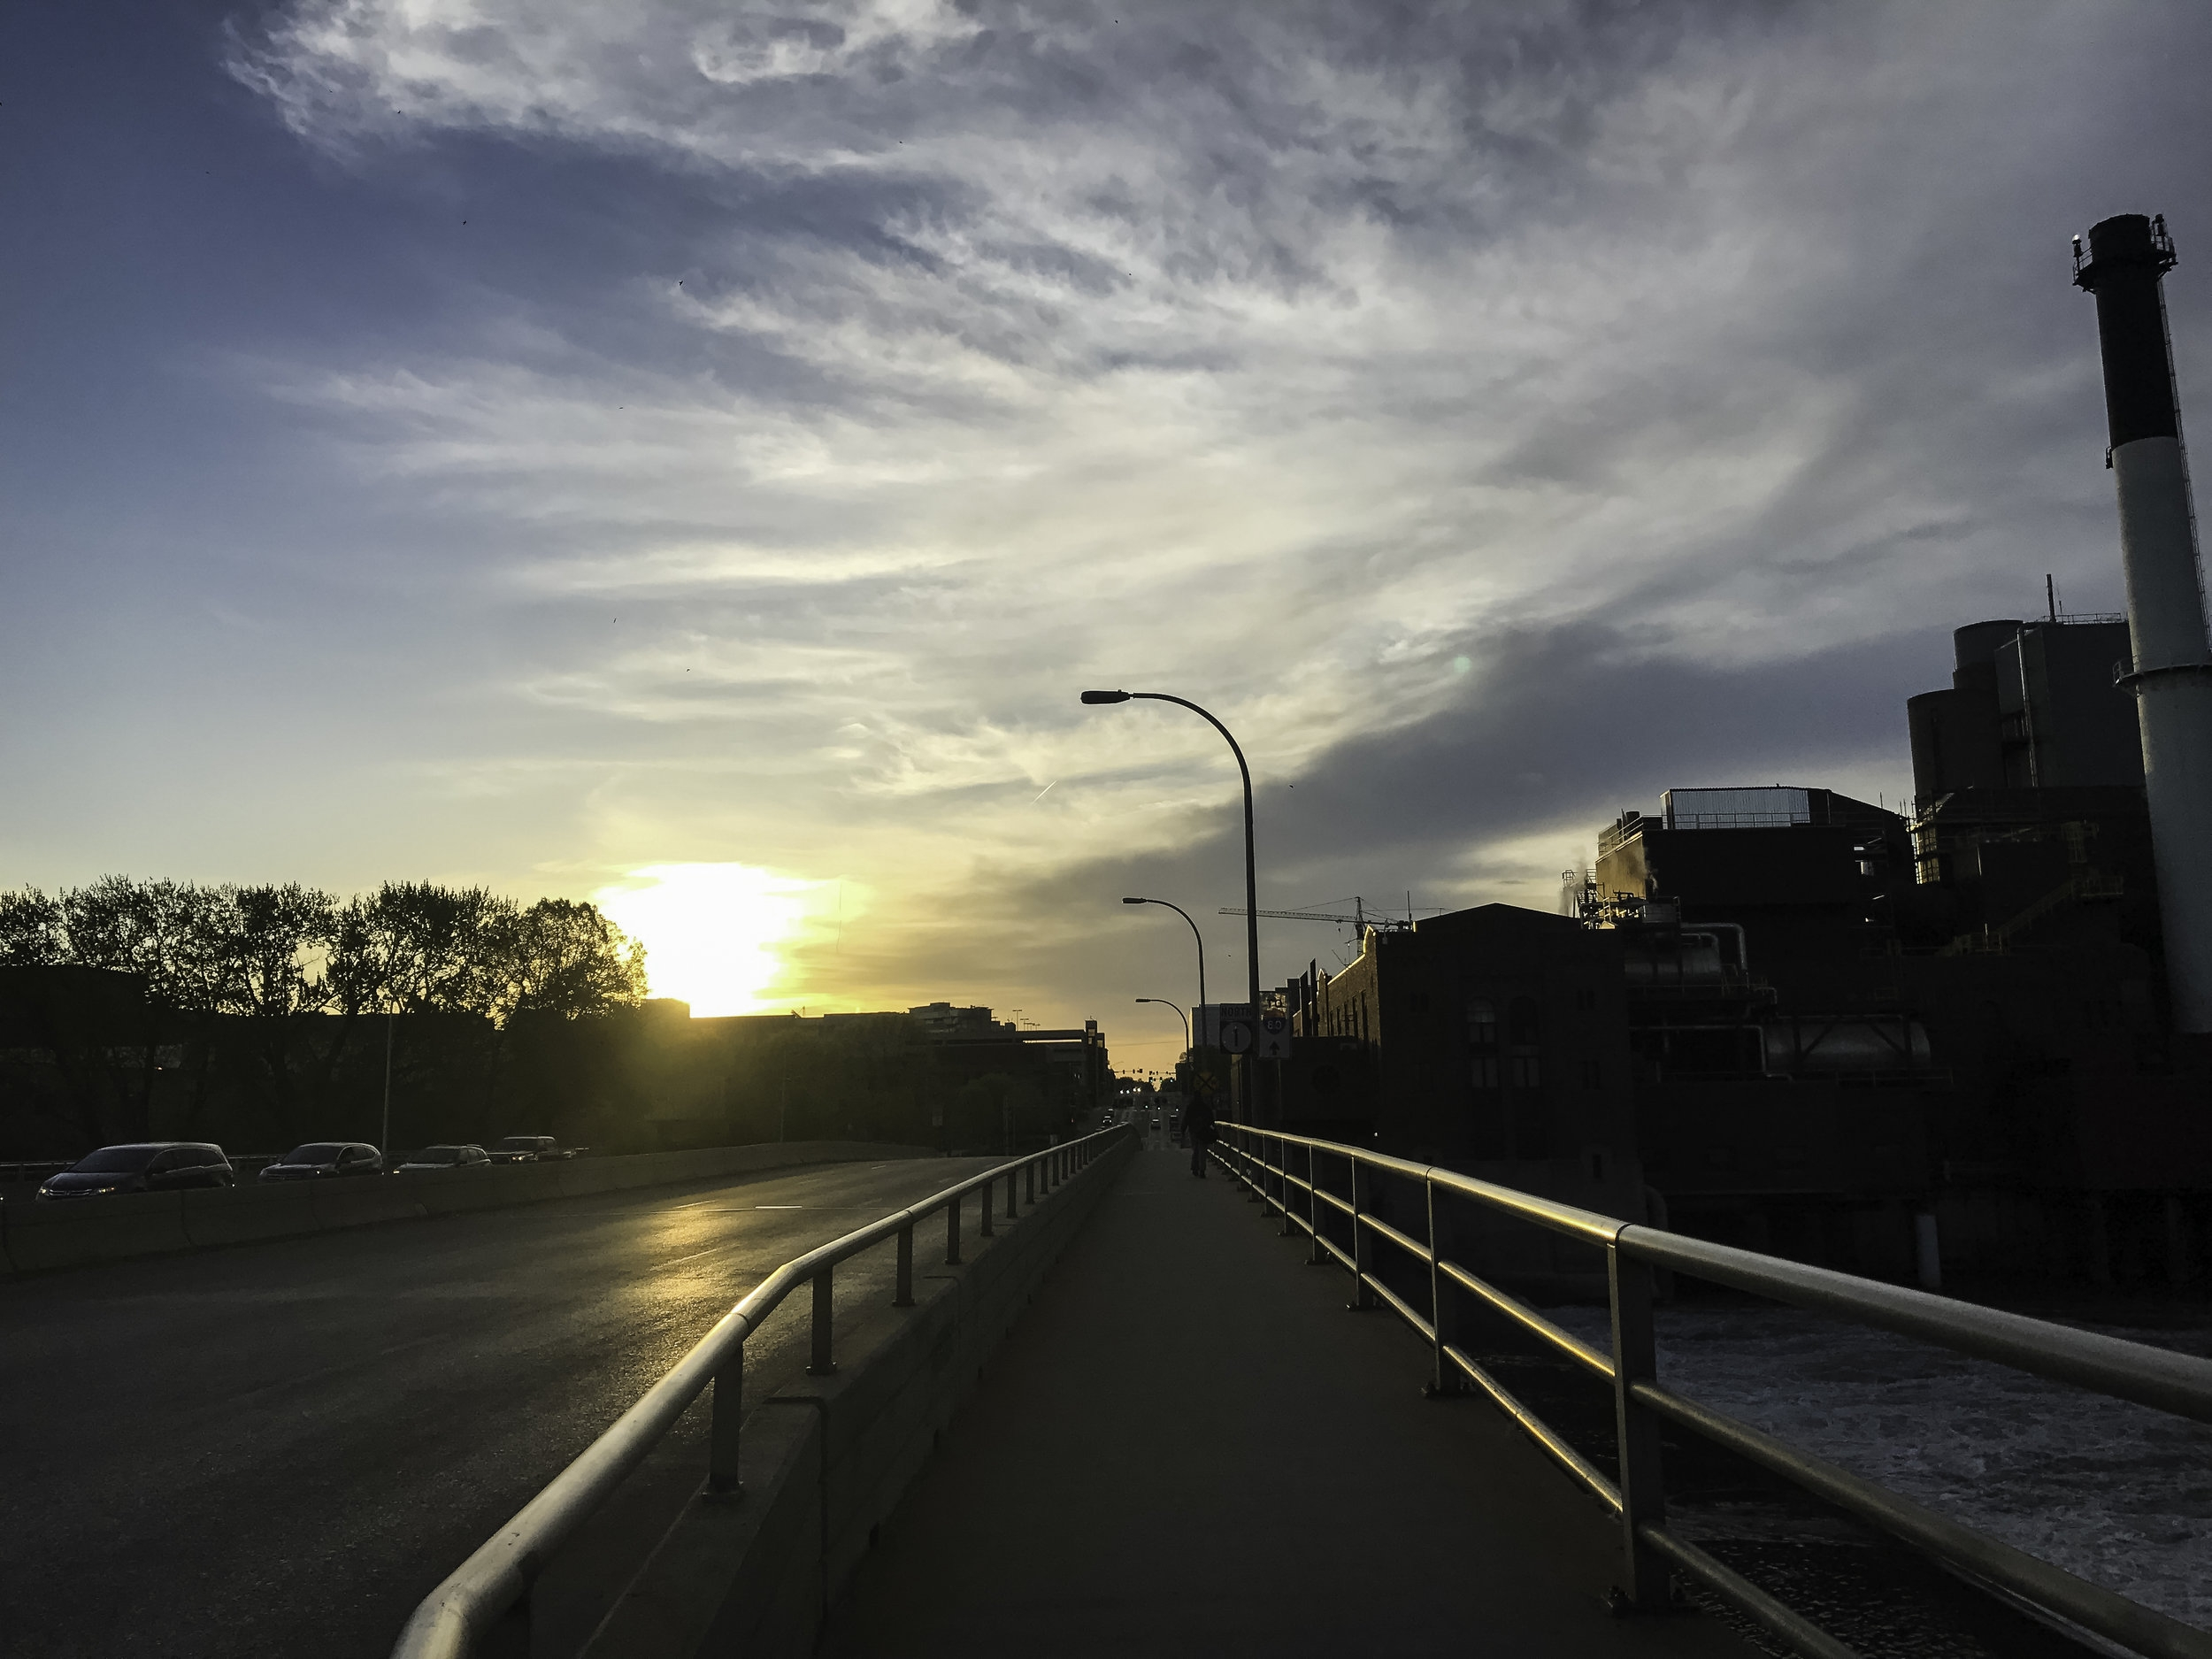 Image Description: Early morning, the sun is rising, over a paved walking path next to a road. There is no traffic and no cars coming. Iowa City, Iowa.